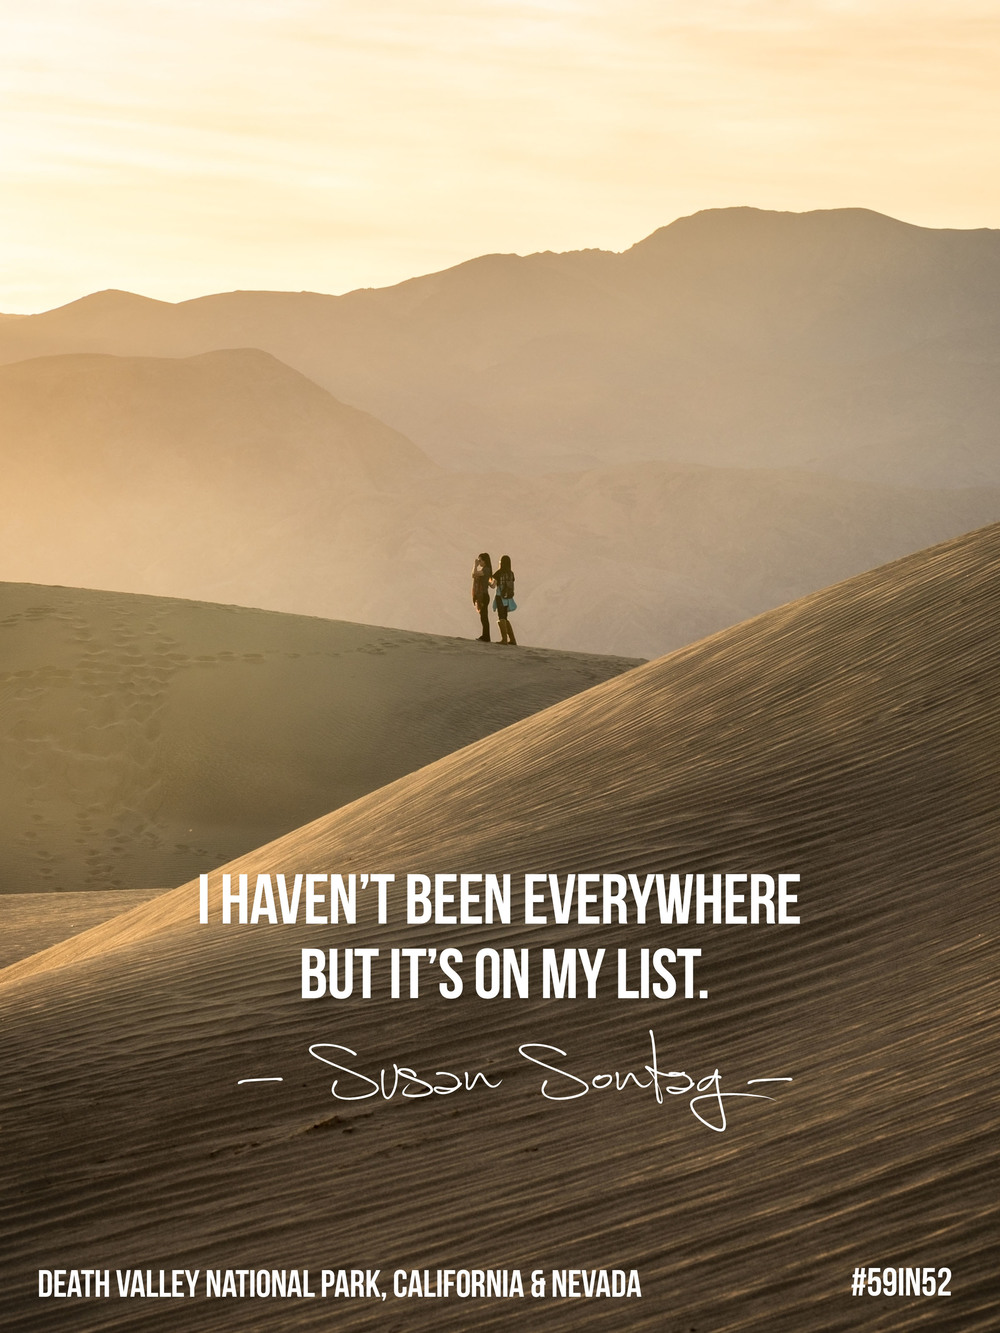 """I haven't been everywhere but it's on my list."" - Susan Sontag"